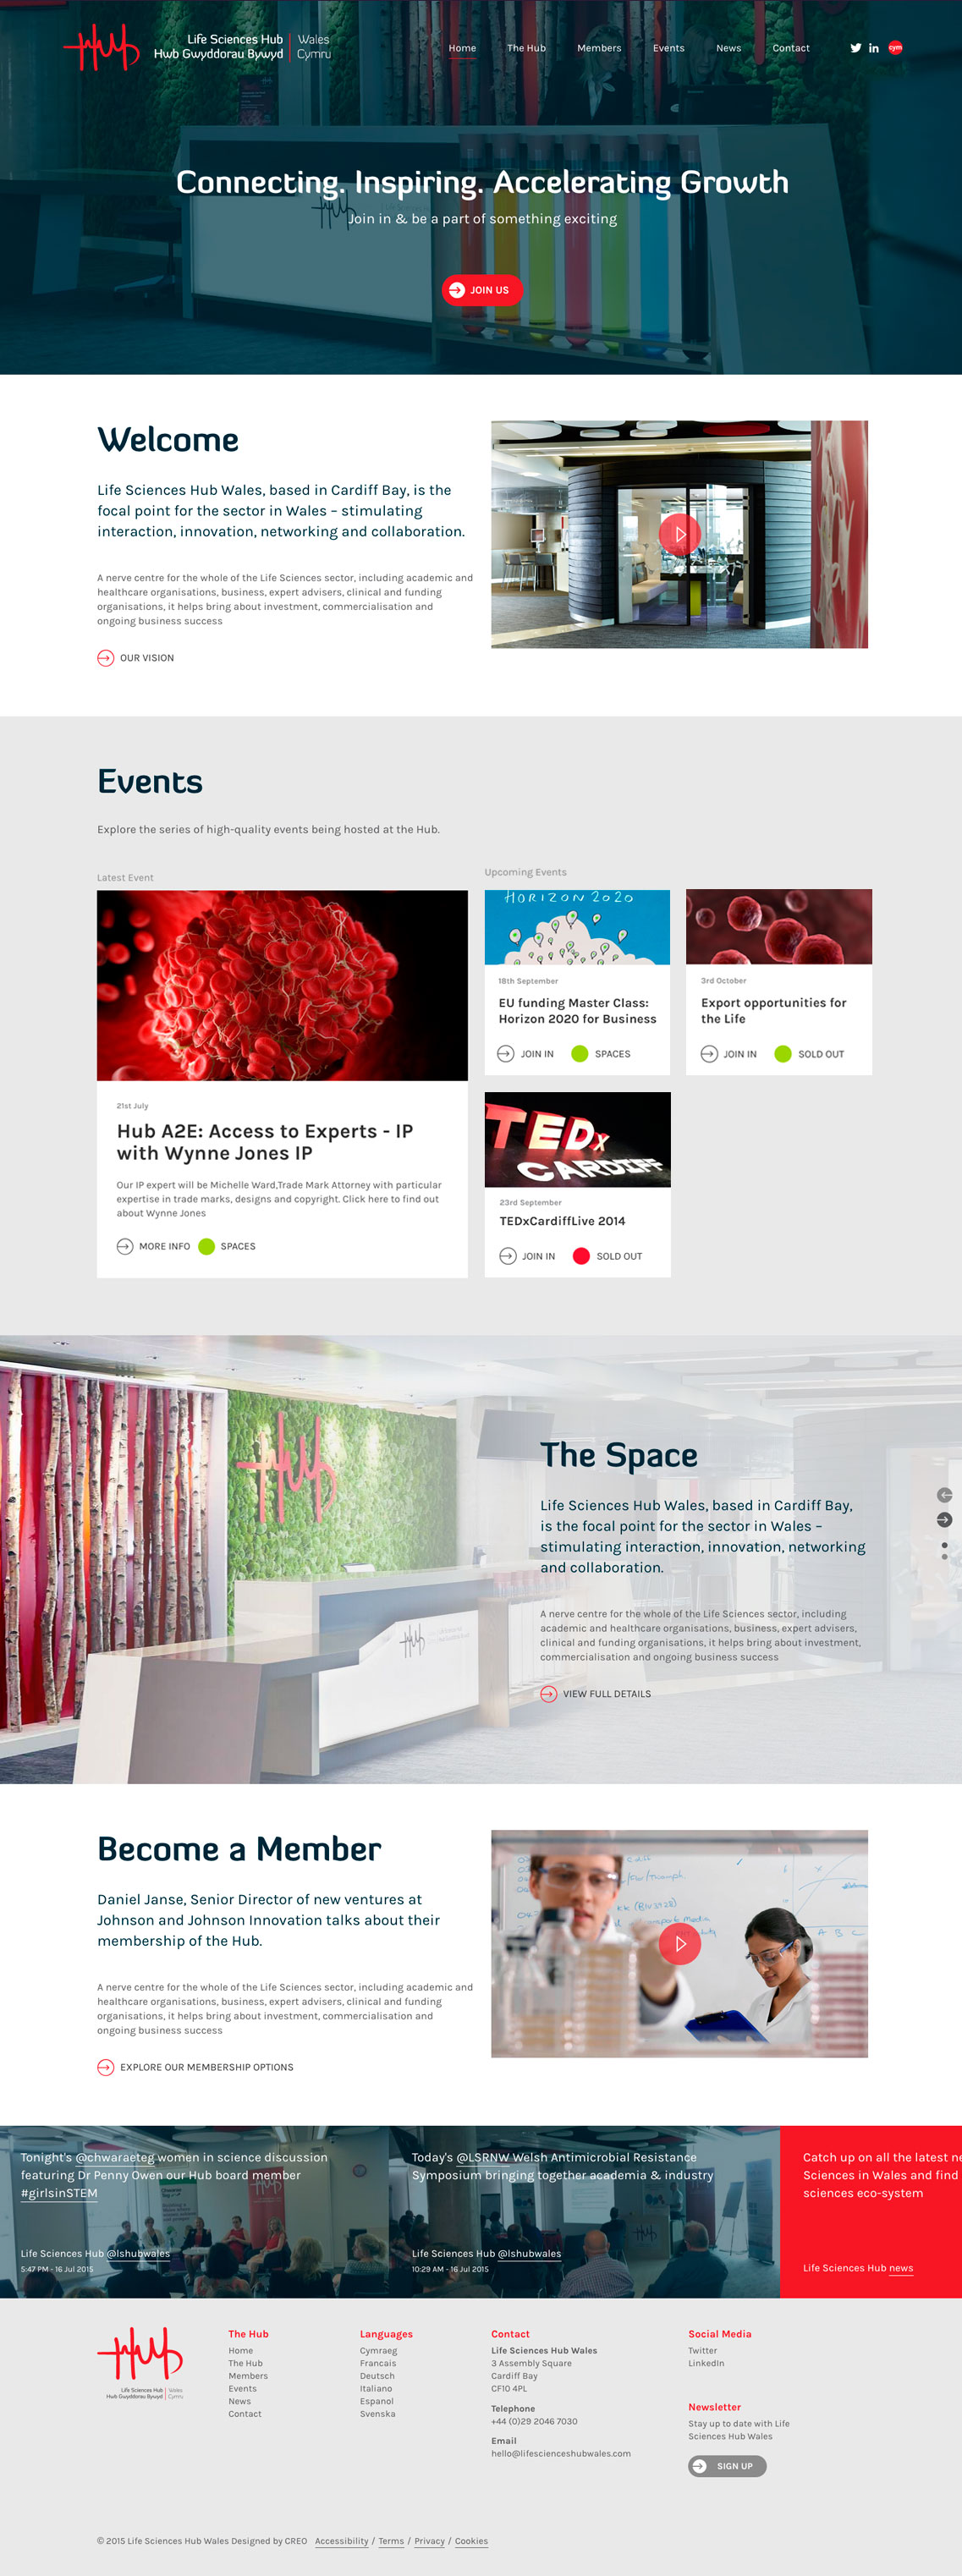 Website Design - Life Sciences Hub - Home Page